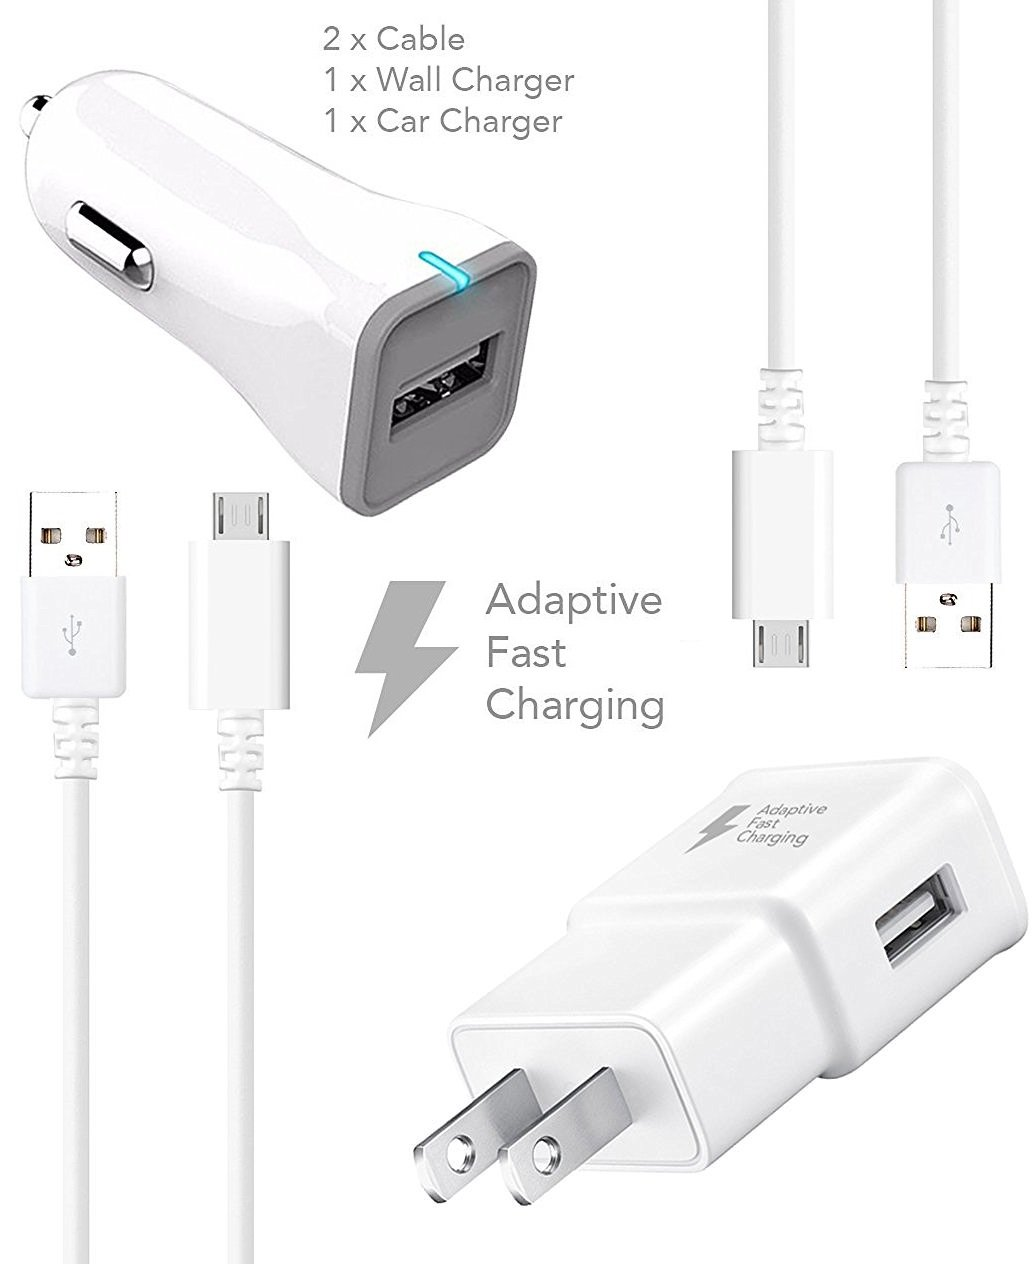 Samsung Galaxy S7 S7 Edge Adaptive Fast Charger Micro USB 2.0 Cable Kit by Ixir - {Wall Charger + Car Charger + 2 Cable} True Digital Adaptive Fast Charging